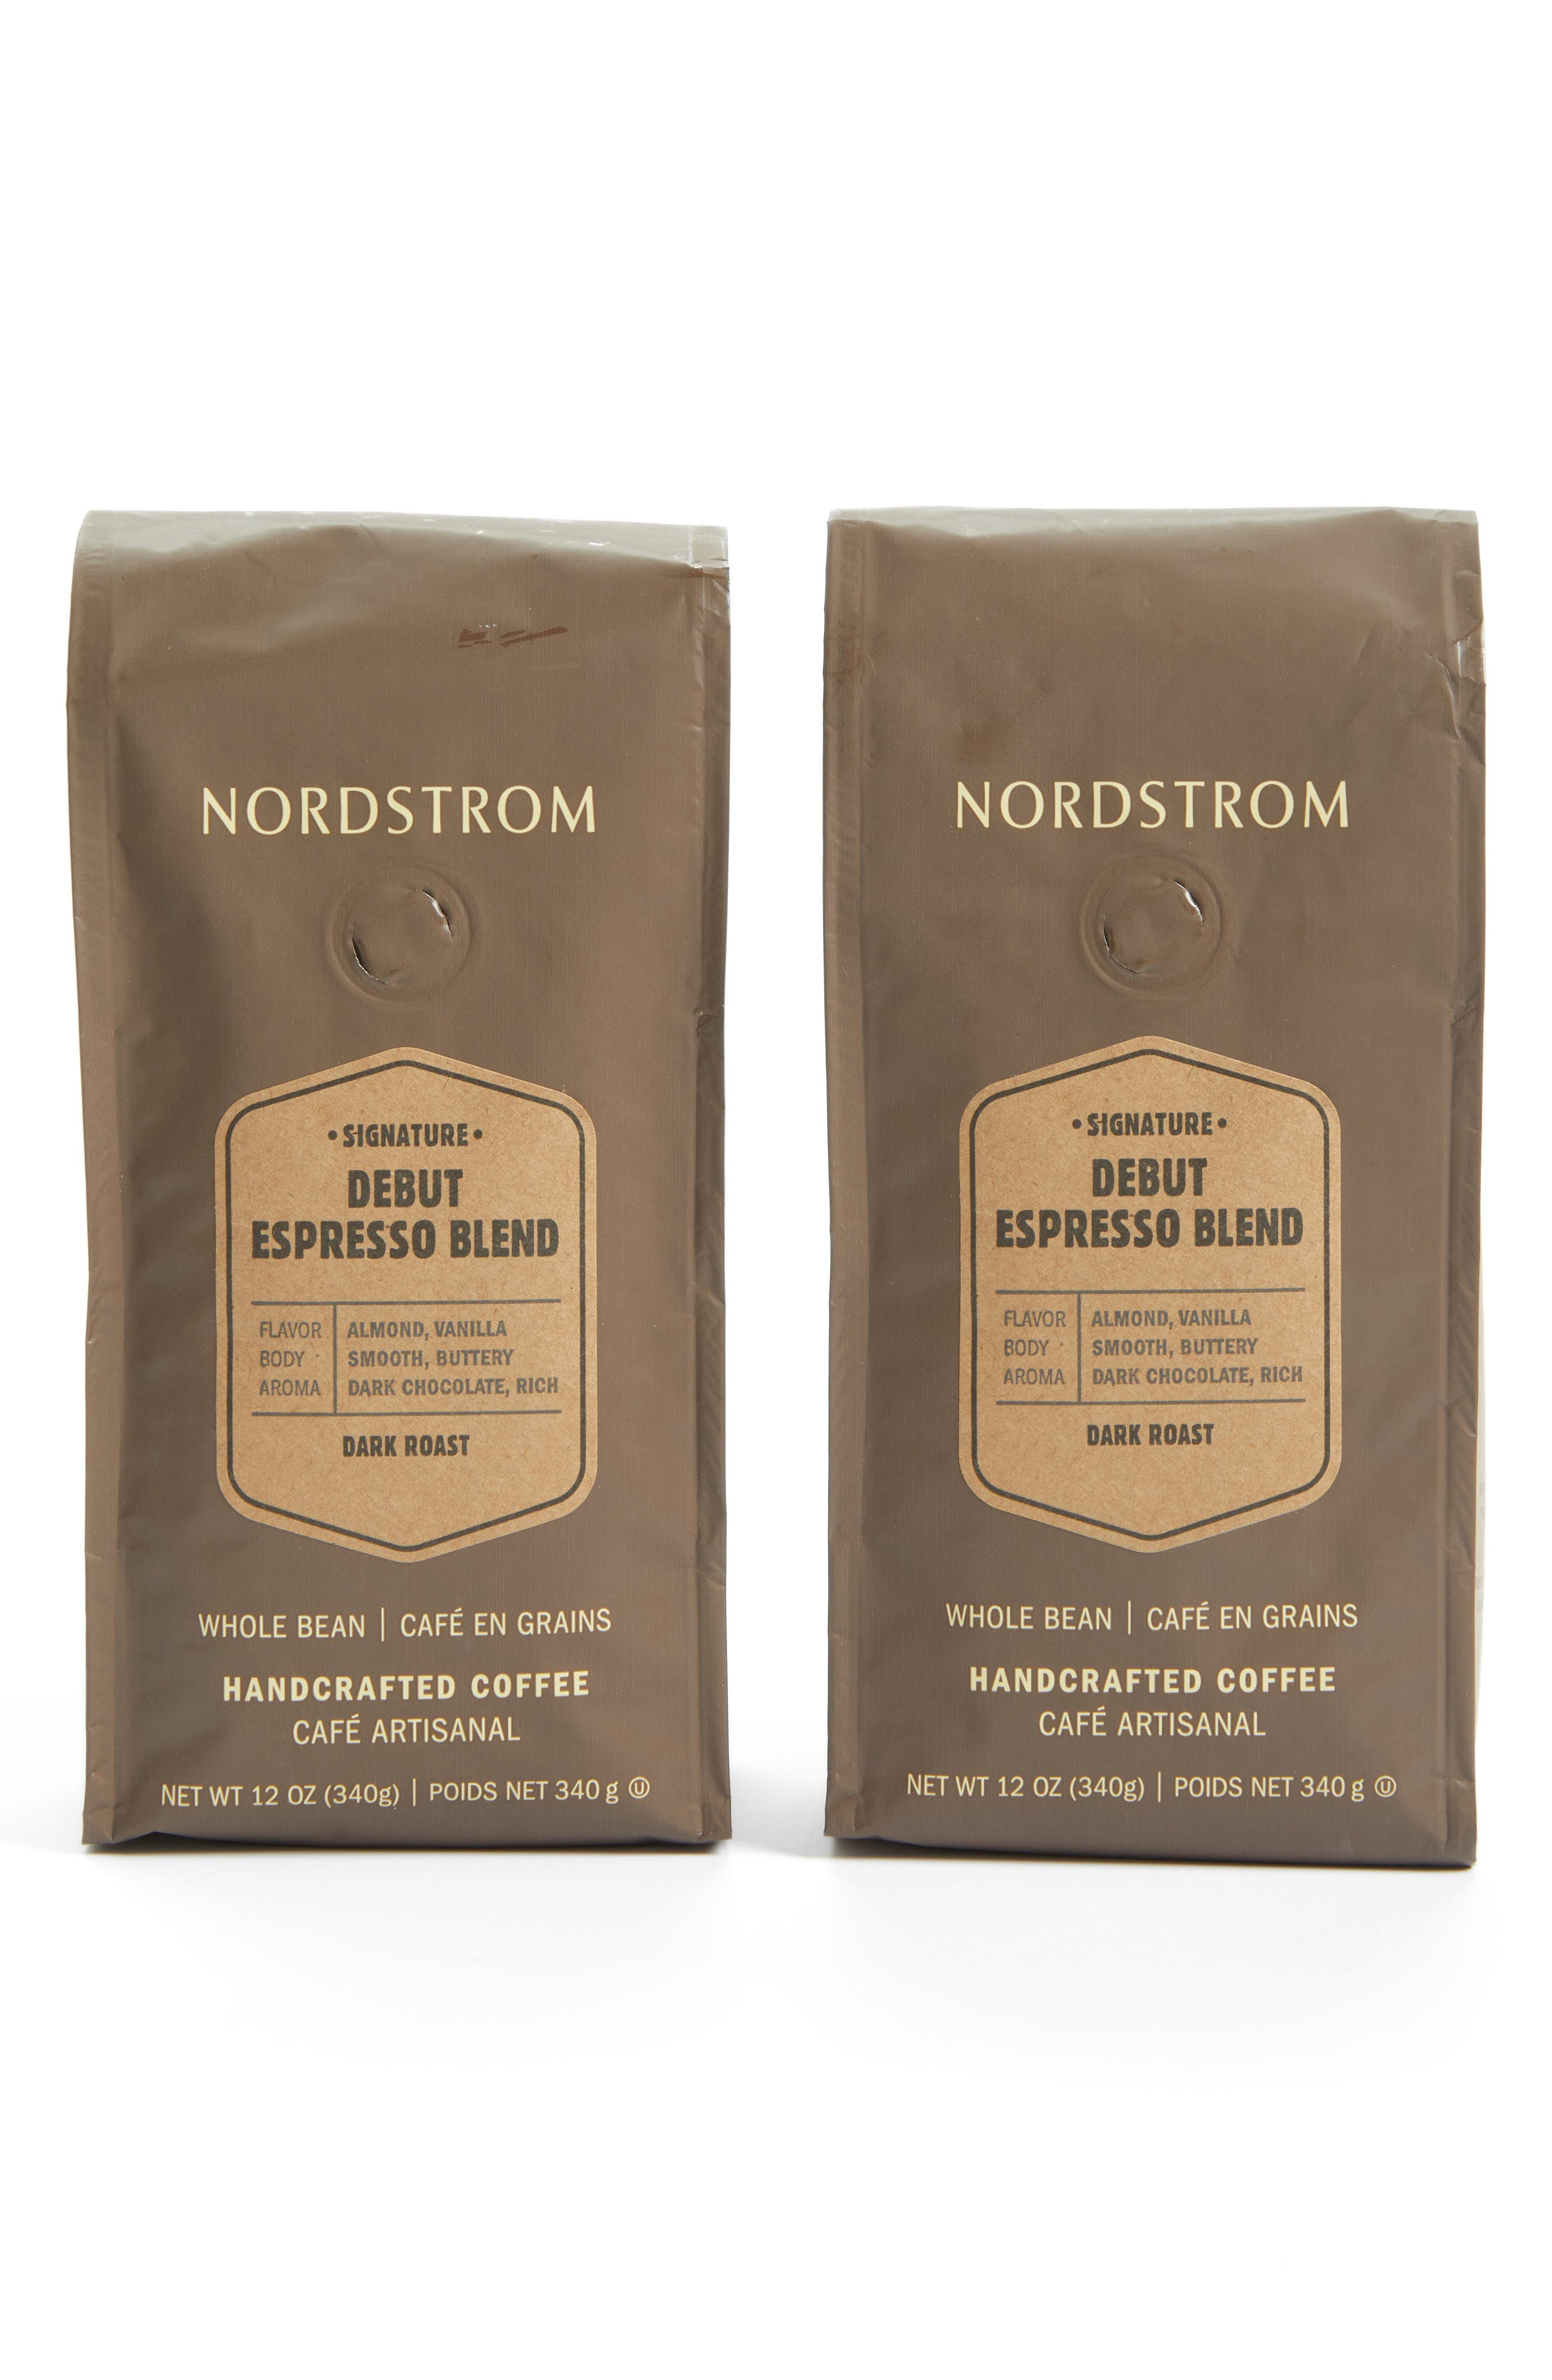 Nordstrom Coffee 'Debut Espresso Blend' Whole Bean Coffee (2-Pack)